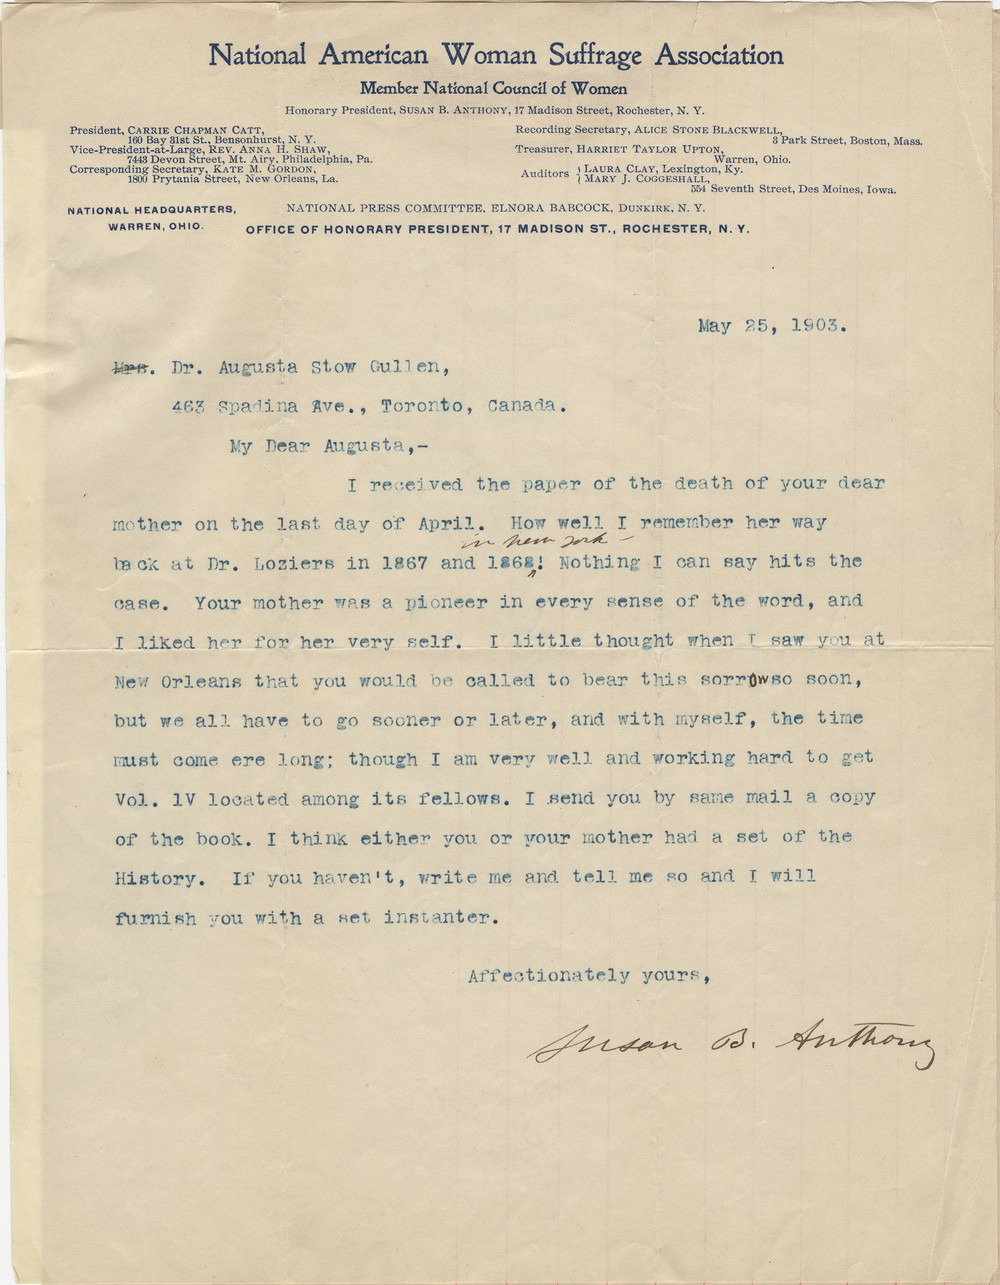 Condolence letter from Susan B. Anthony to August, about the death of Emily. Courtesy the Wilfrid Laurier University Archives.